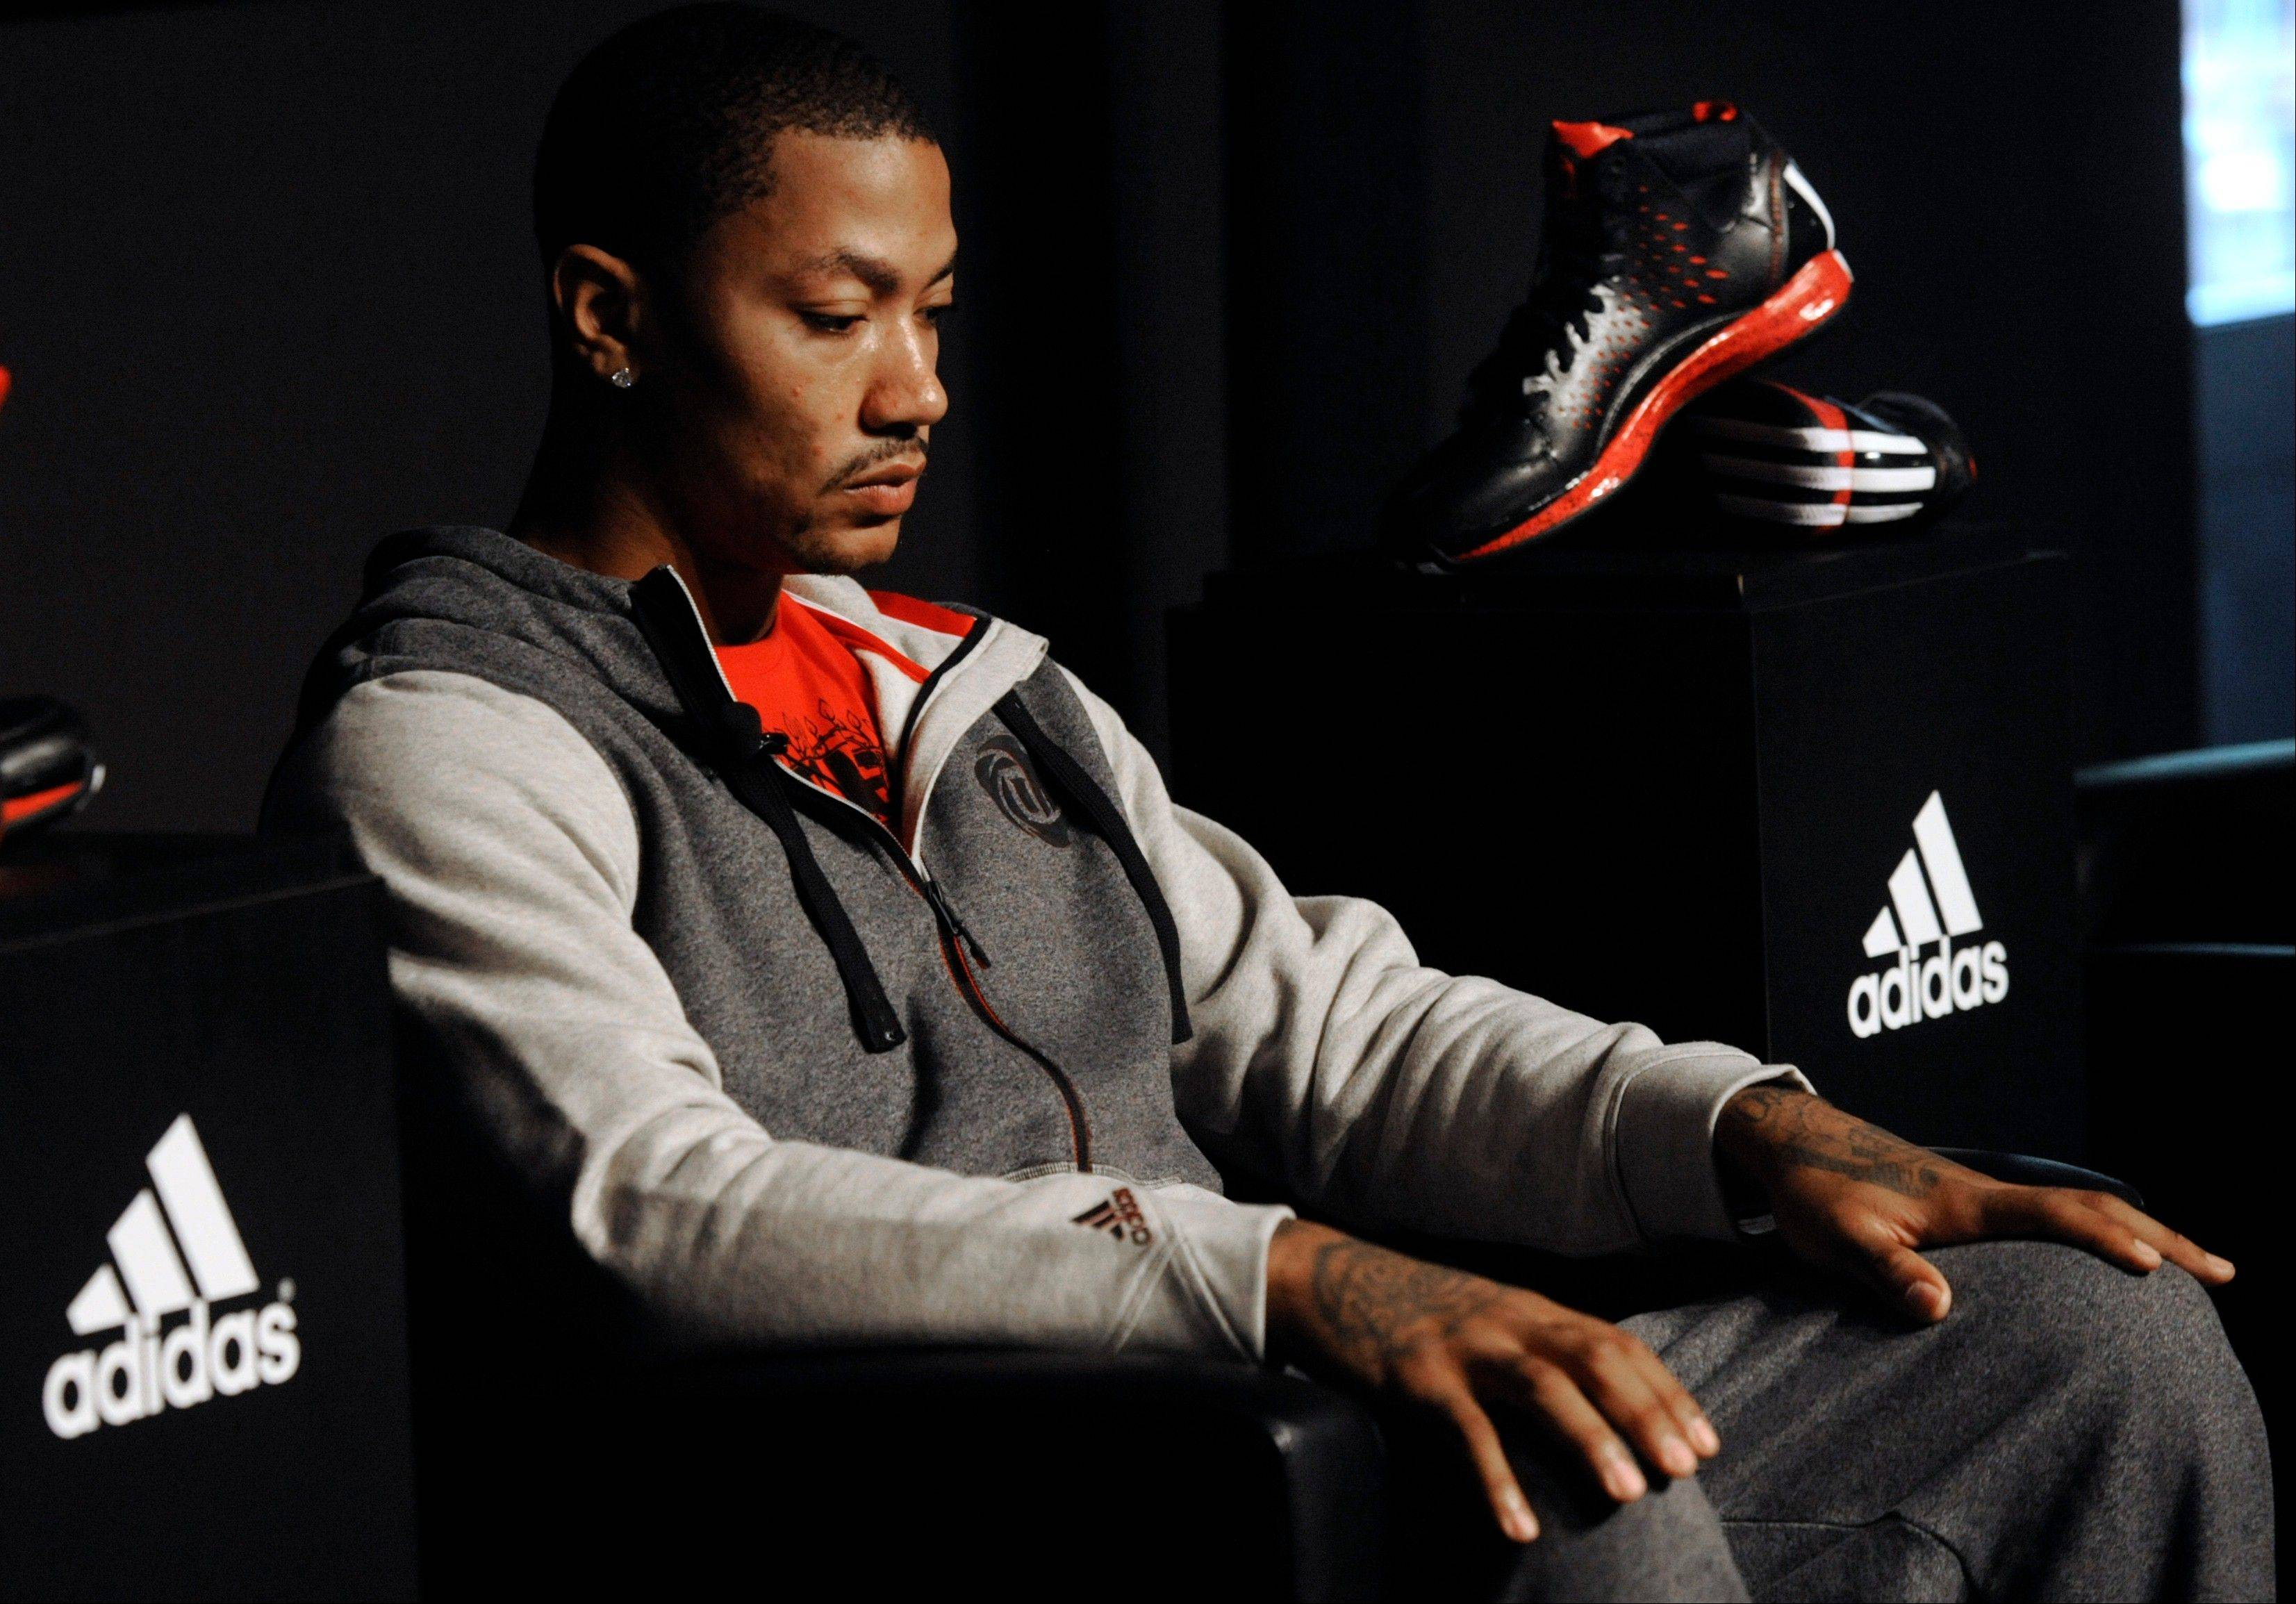 Bulls guard Derrick Rose is the face of Adidas, but now some industry experts say Adidas may need to rethink its NBA marketing campaign and find a viable replacement as Chicago�s superstar sits out a second NBA season due to injury.